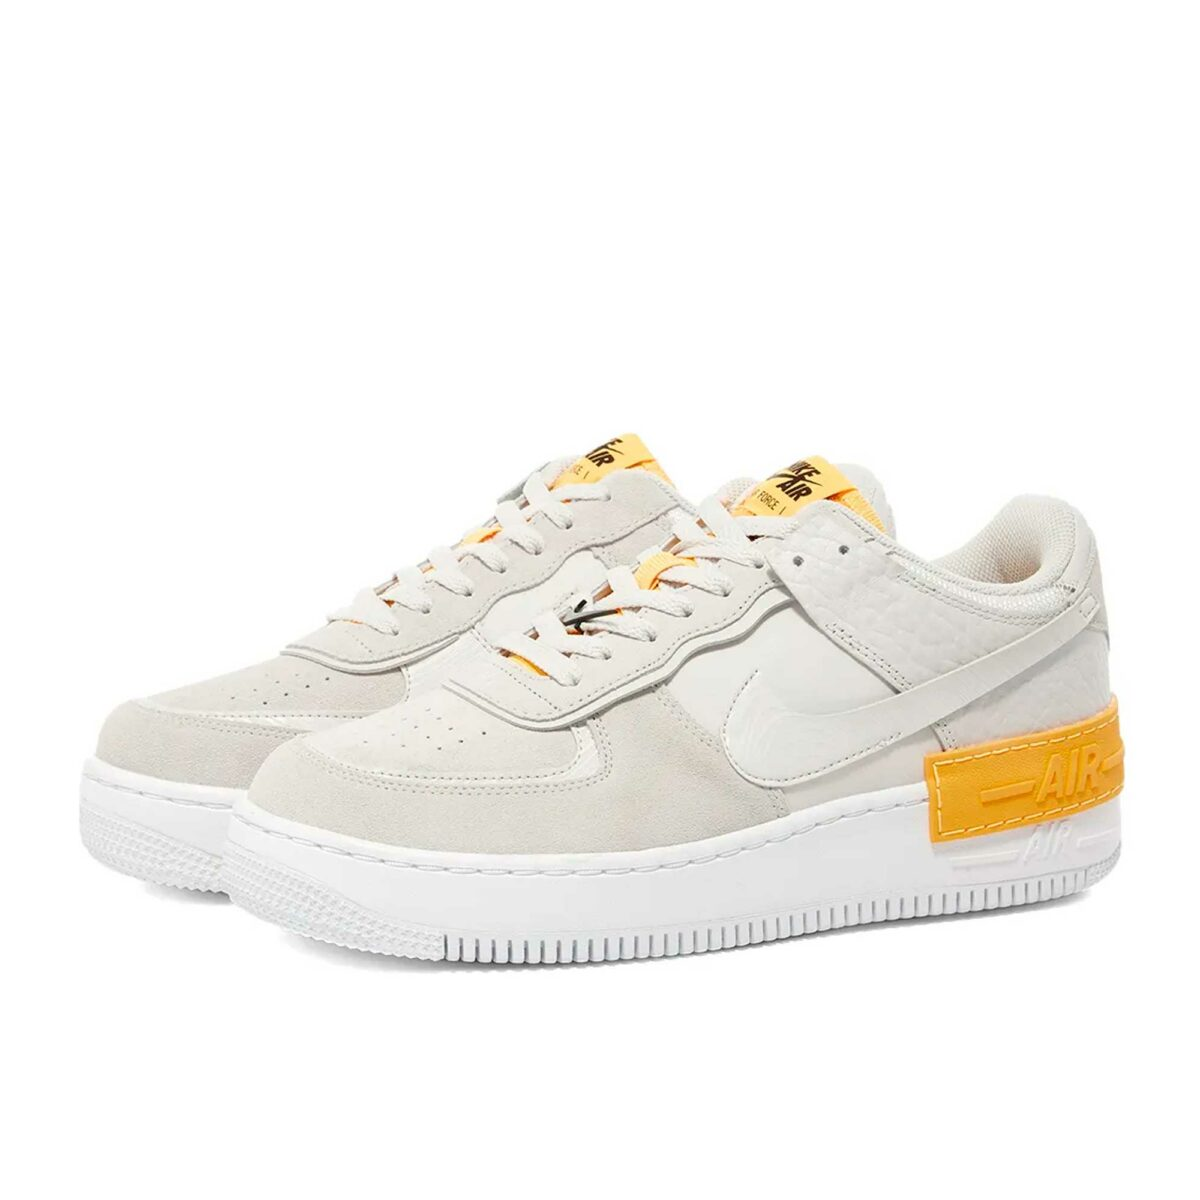 nike air force 1 shadow digital nature w CU3446_001 купить